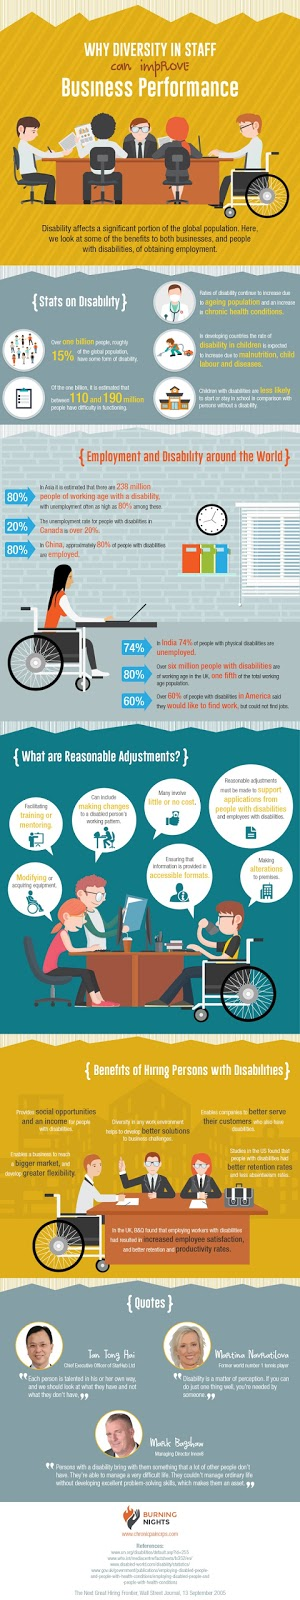 infographic explaining why diversity in staff can improve business performance. Text version is below the infographic.